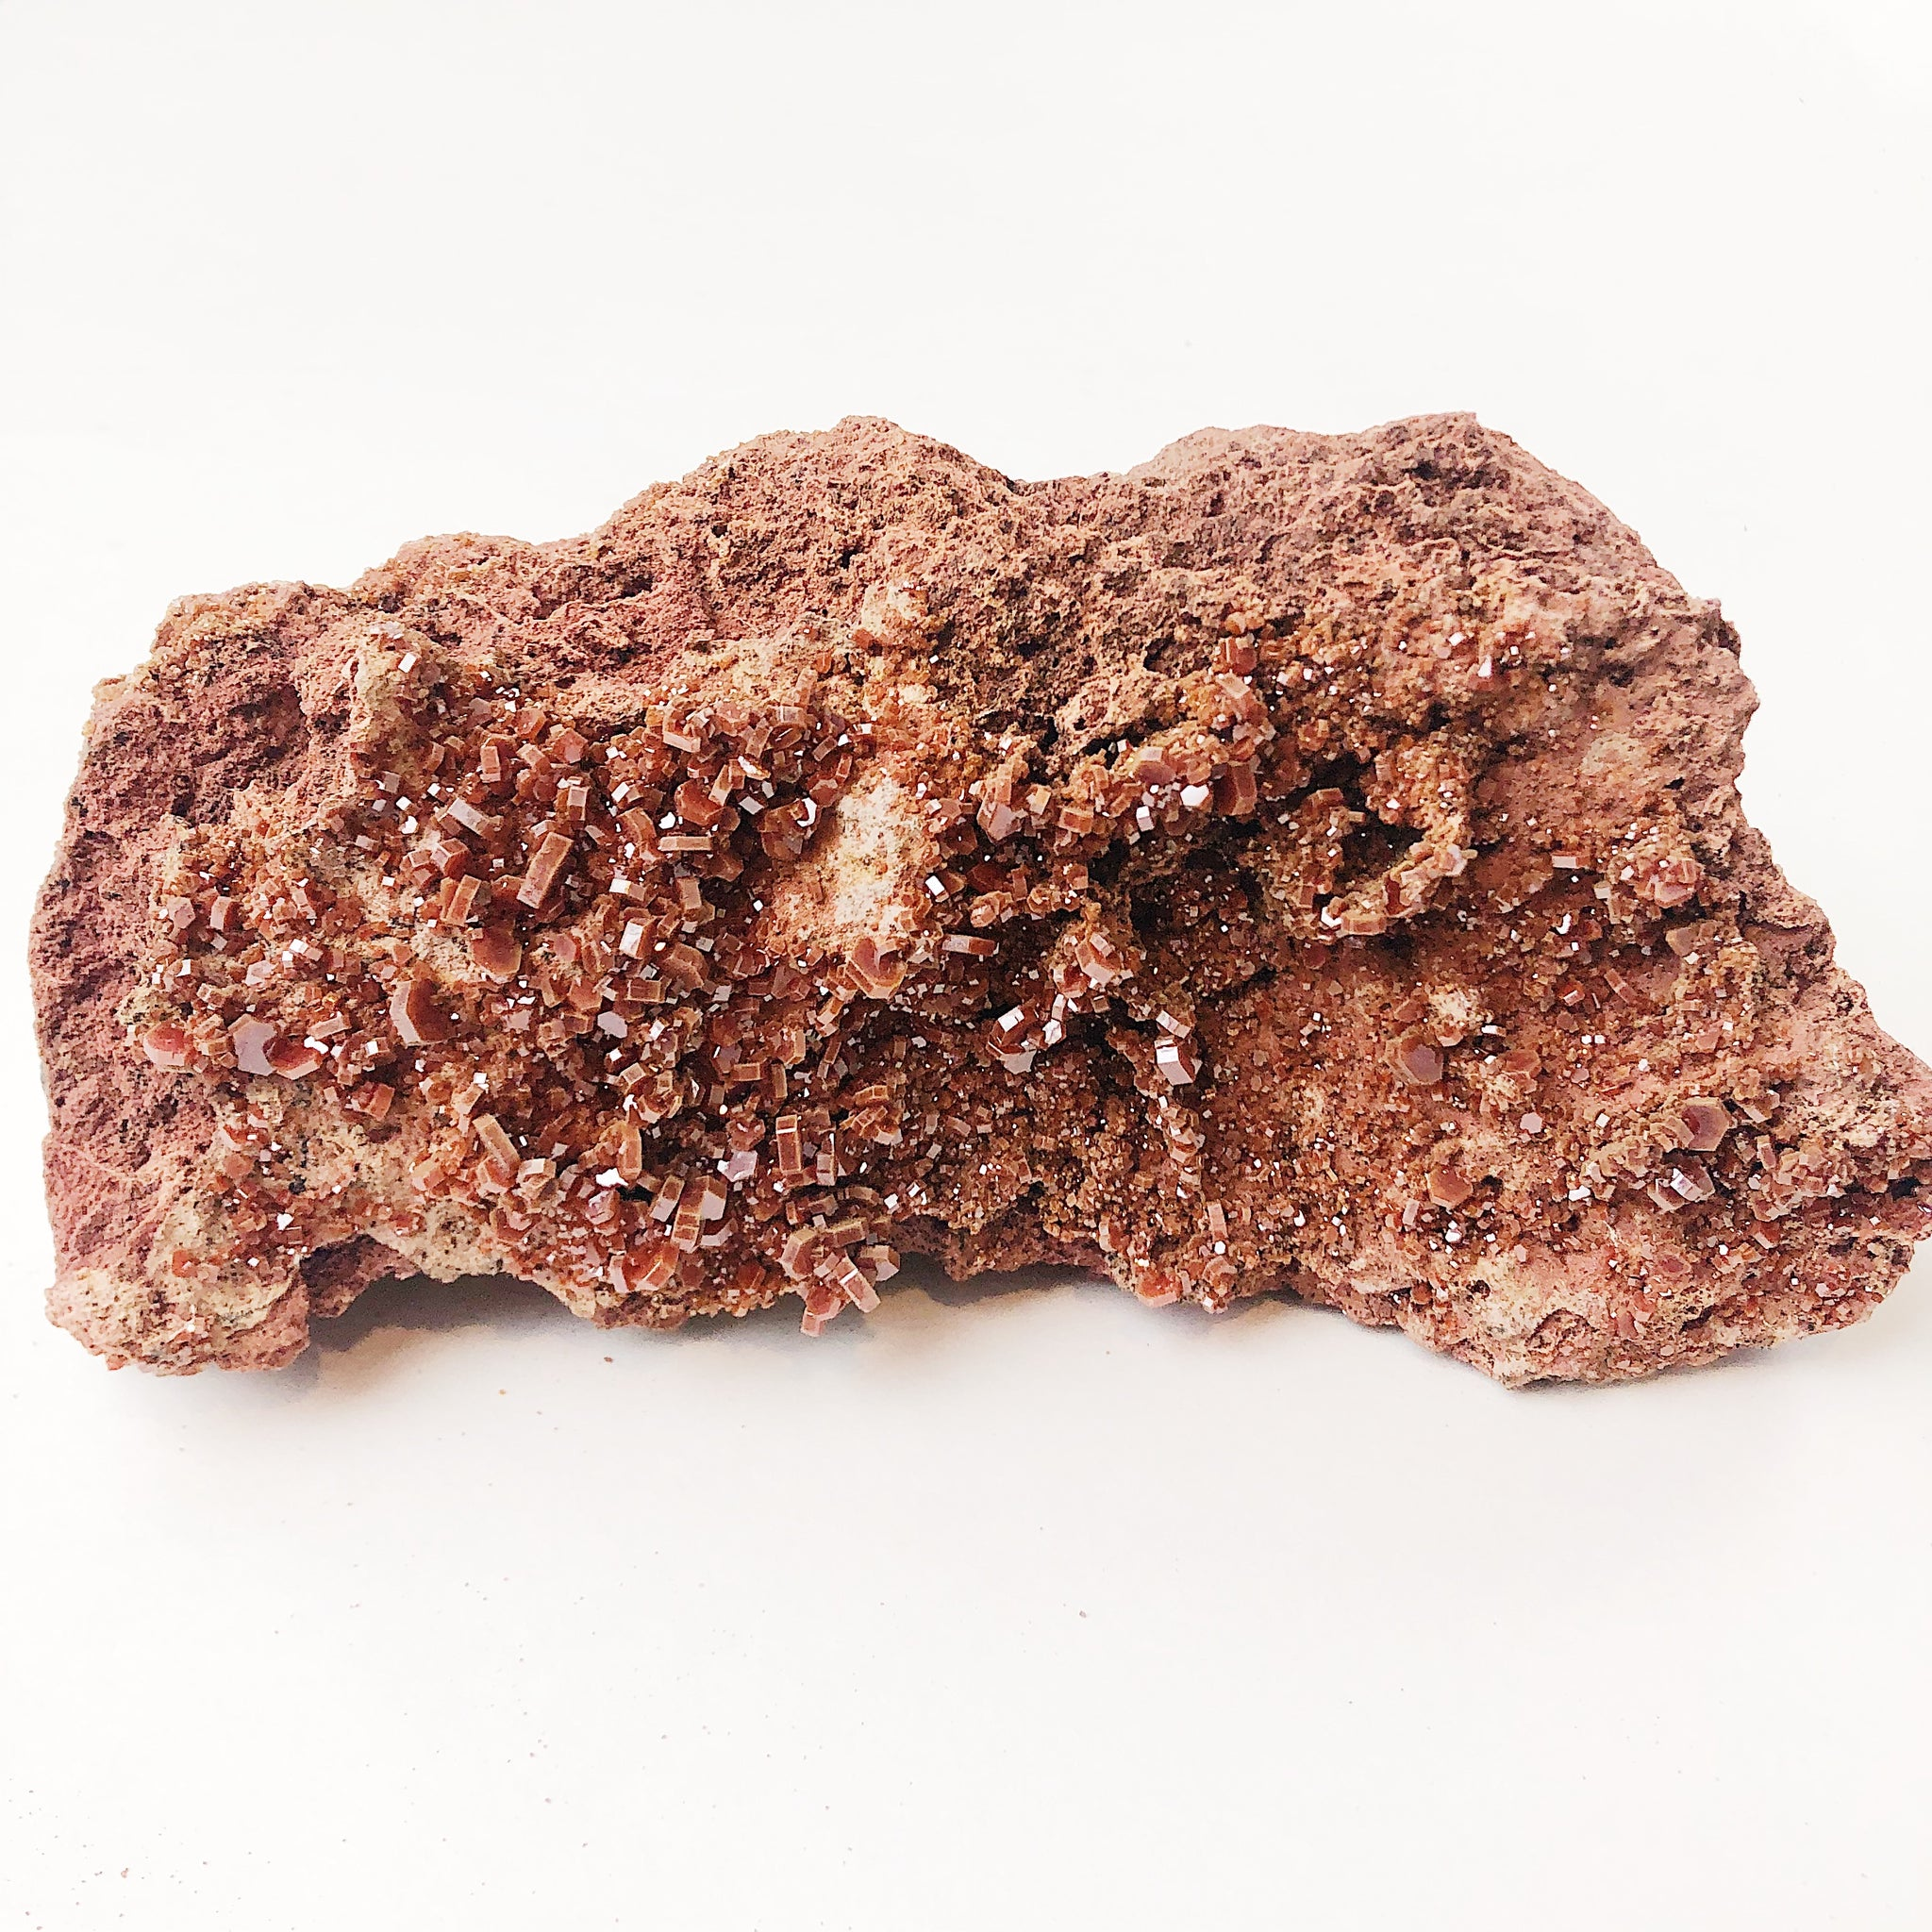 Self-Standing Vanadinite Specimen